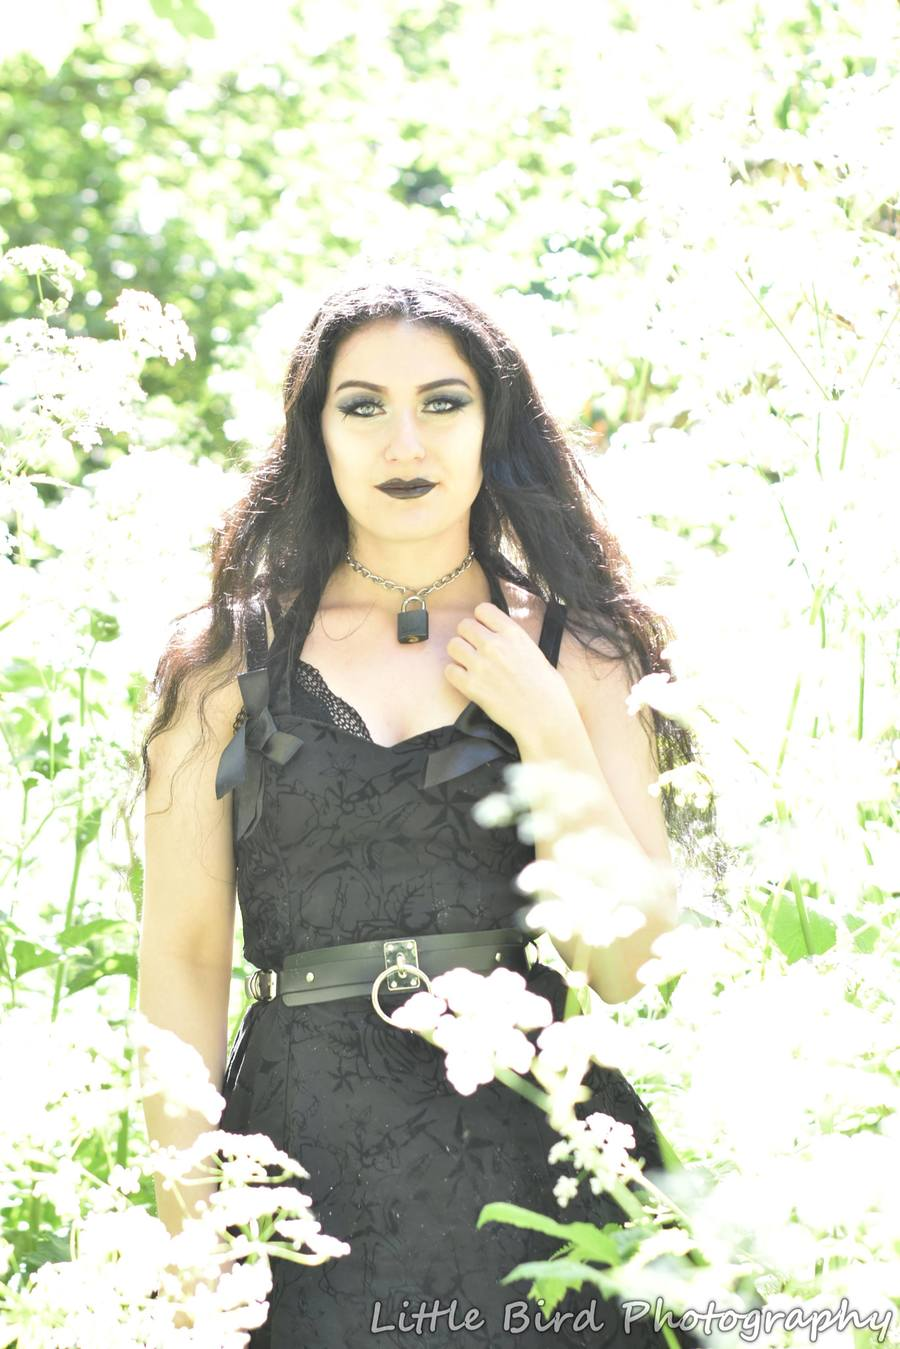 Sunlight and Flowers / Photography by Gail C R Photography, Model Chaotic Chaos / Uploaded 23rd May 2018 @ 10:19 PM